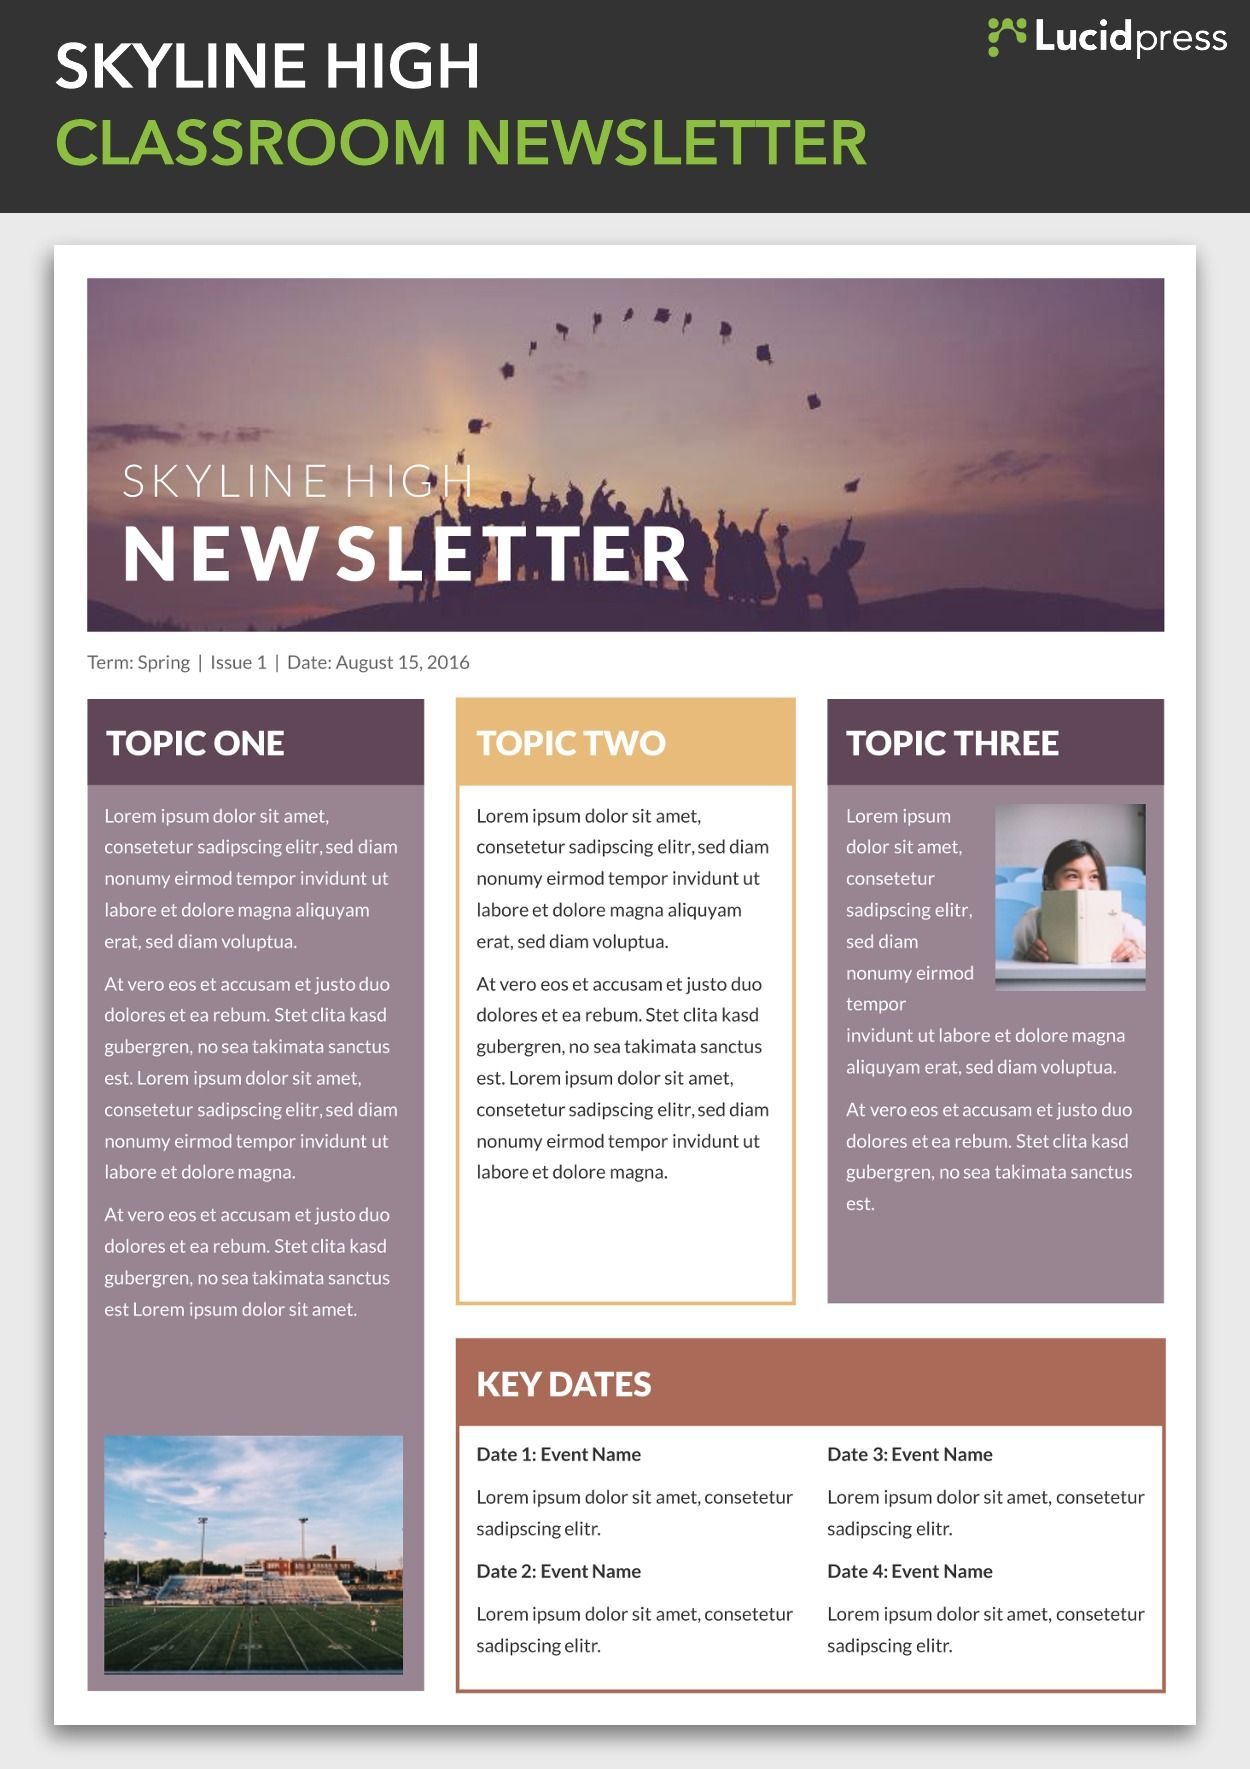 13 Best Newsletter Design Ideas To Inspire You Lucidpress With